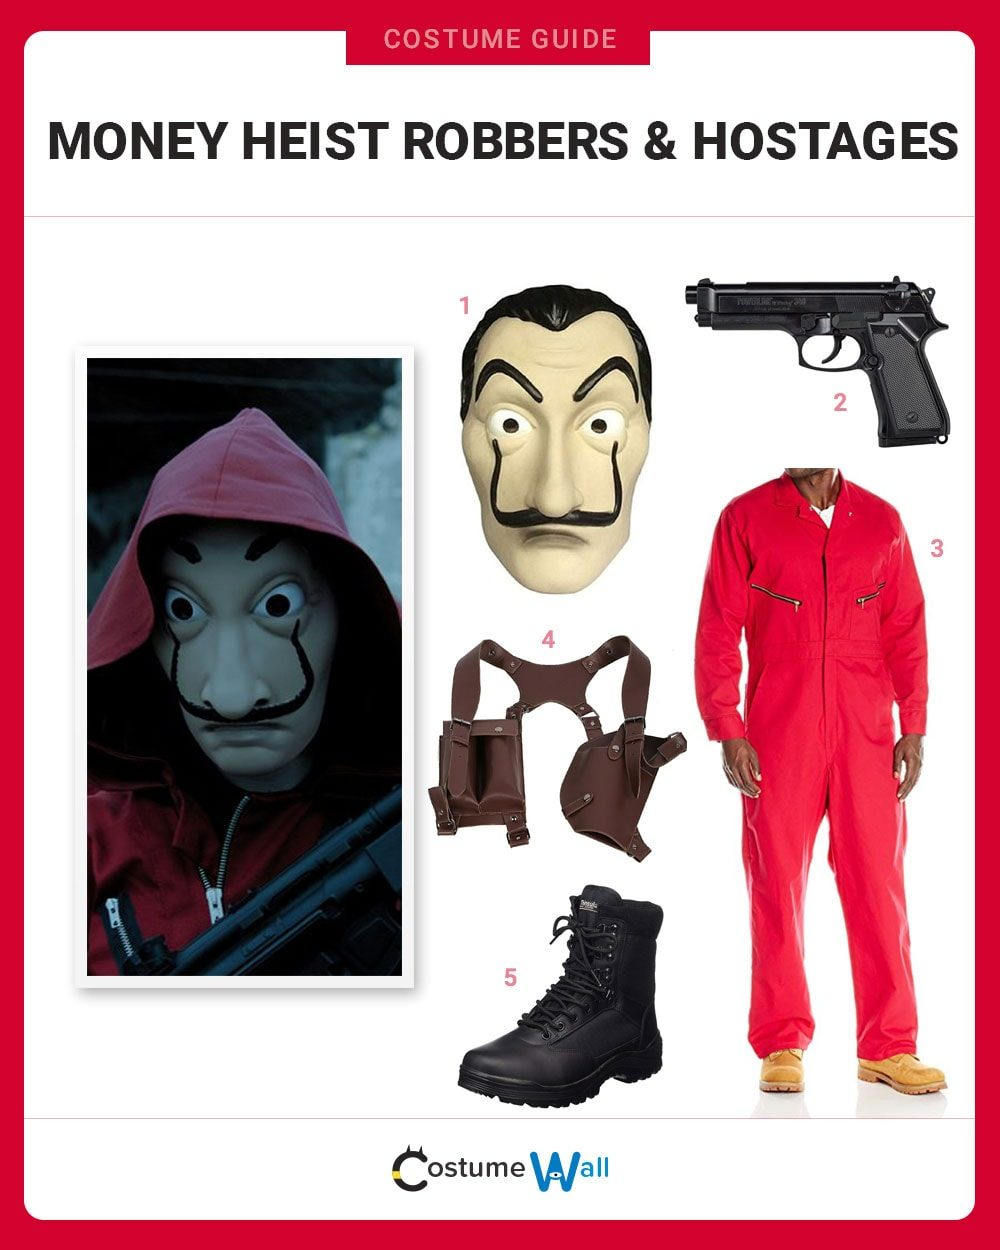 Money Heist Robbers Costume Guide